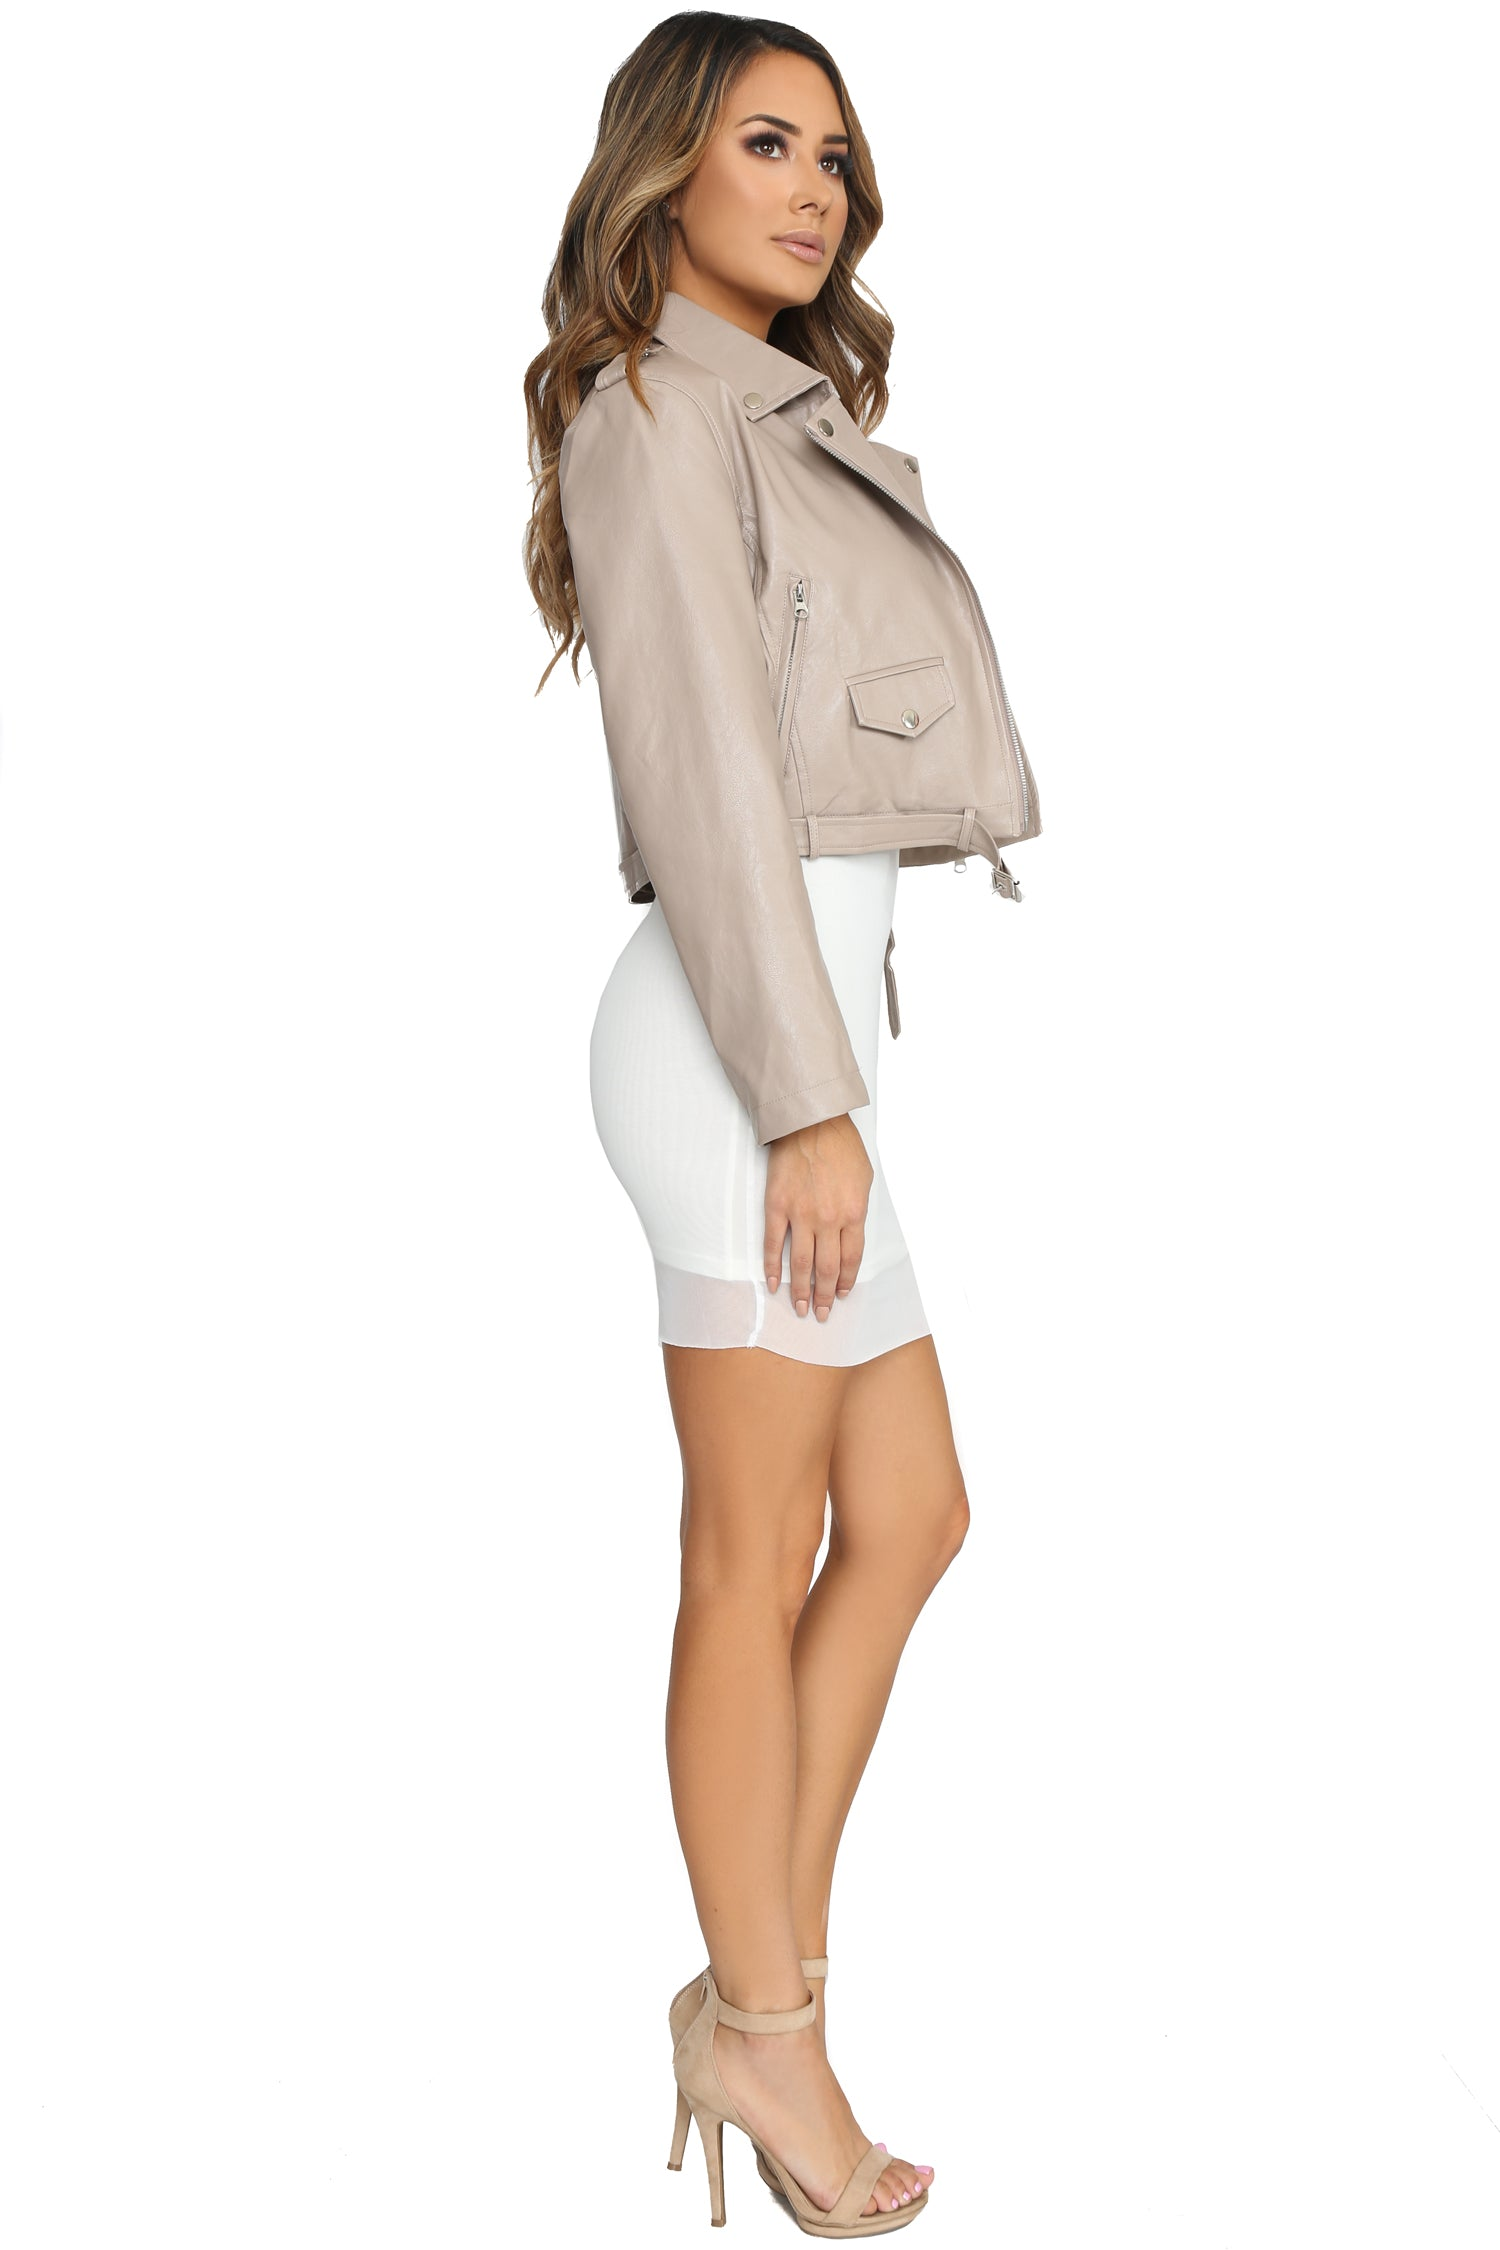 IN THE NUDE MOTO JACKET